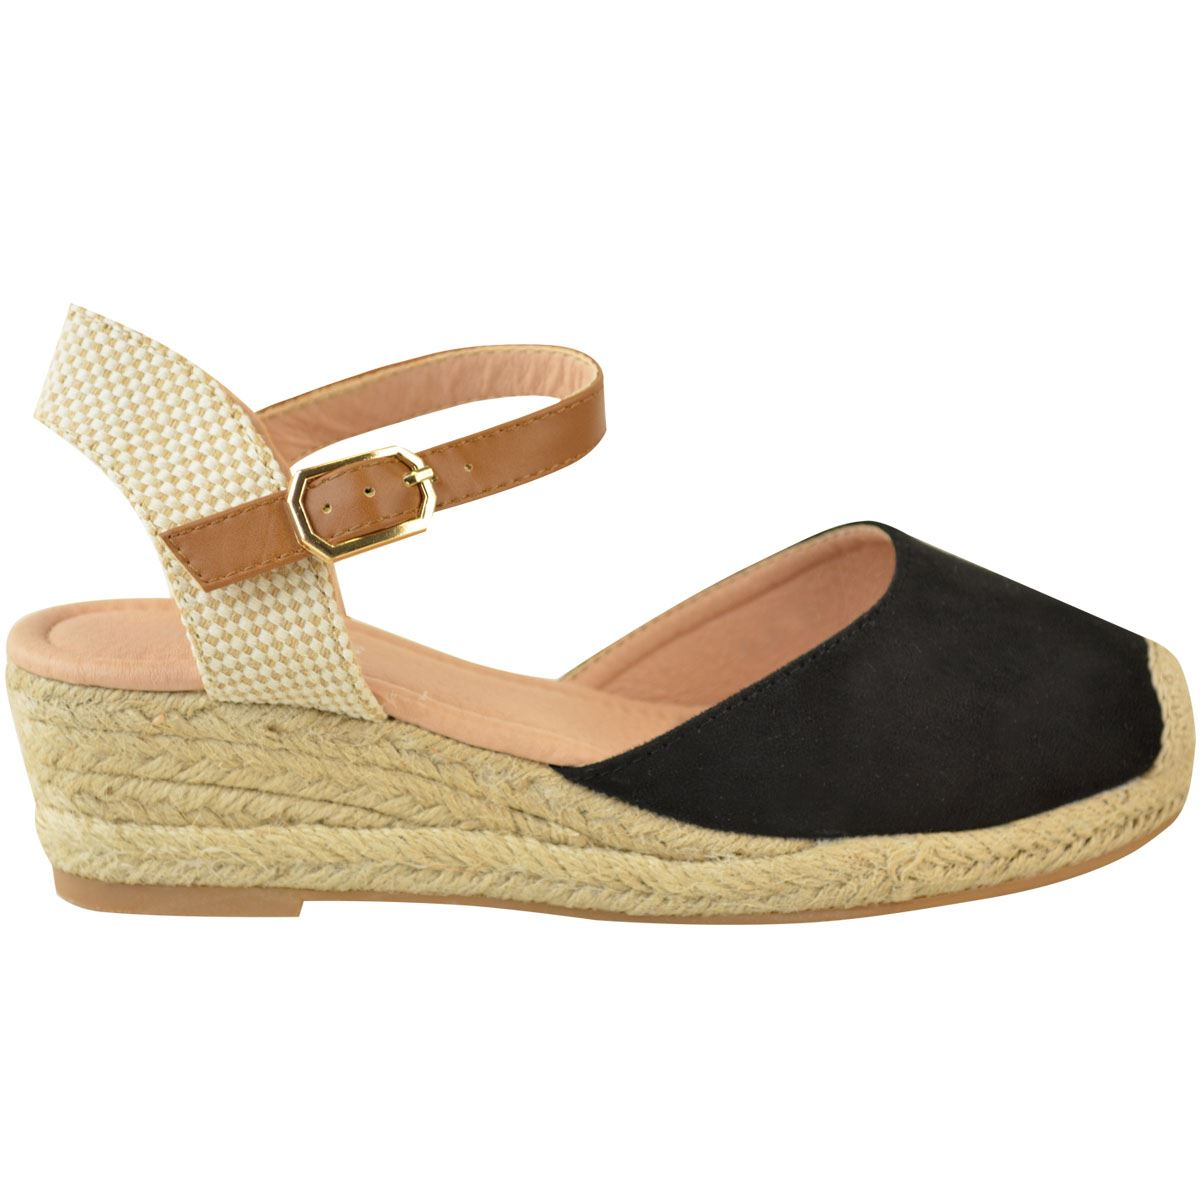 fantastic savings online for sale check out Details about Womens Ladies Low Wedge Heel Summer Sandals Strappy  Espadrilles Shoes Size New